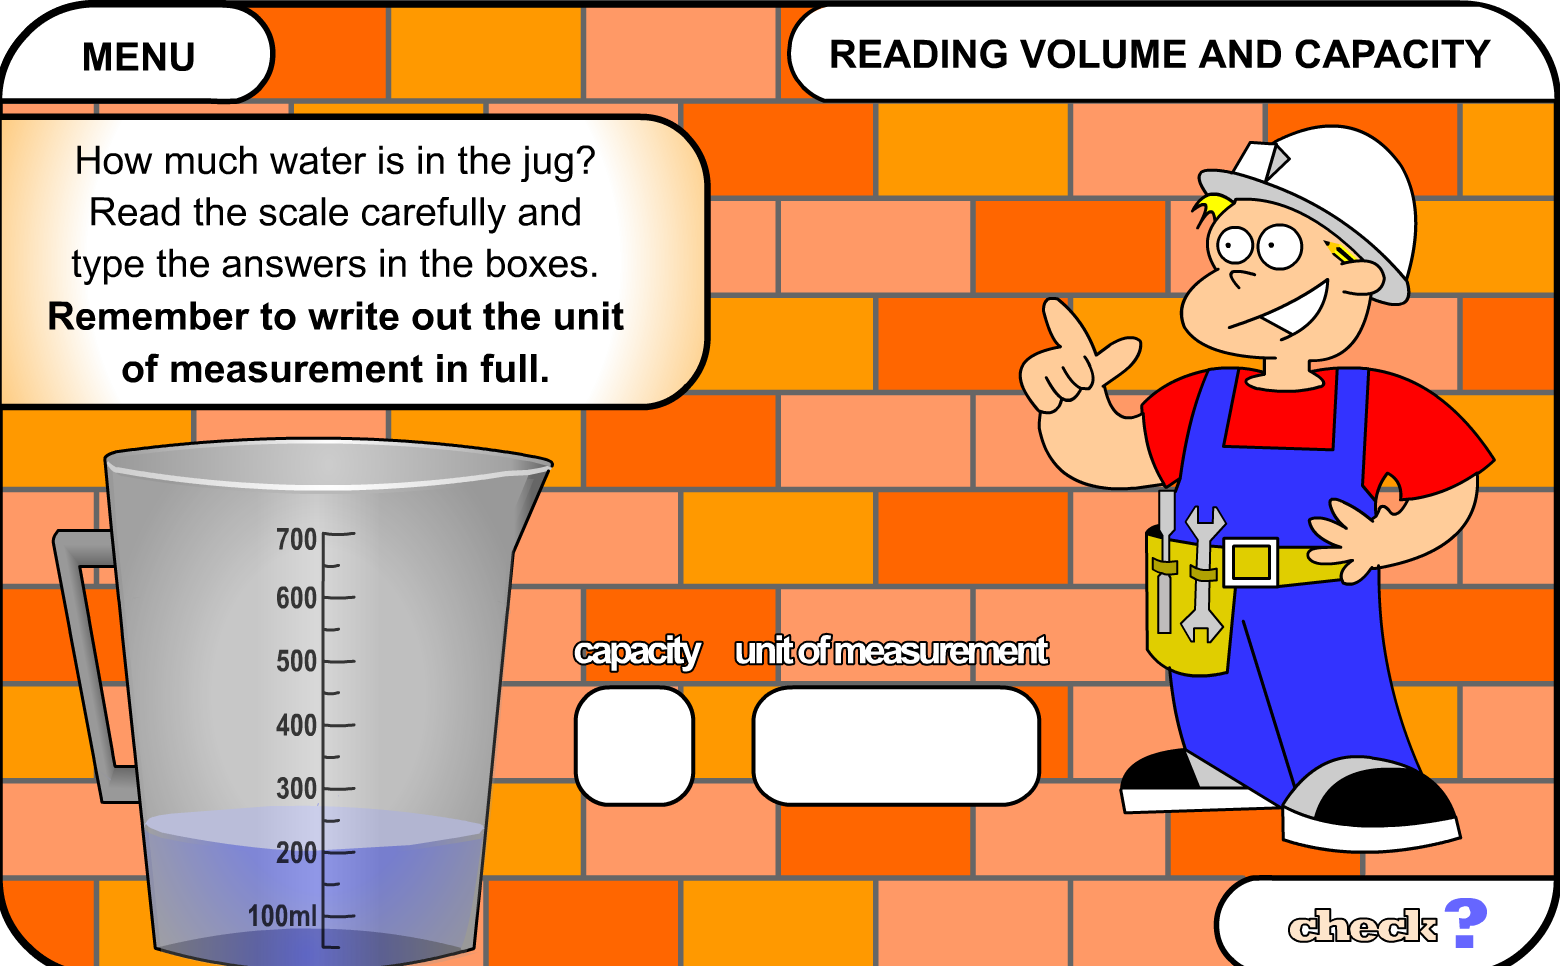 Reading Volume And Capacity